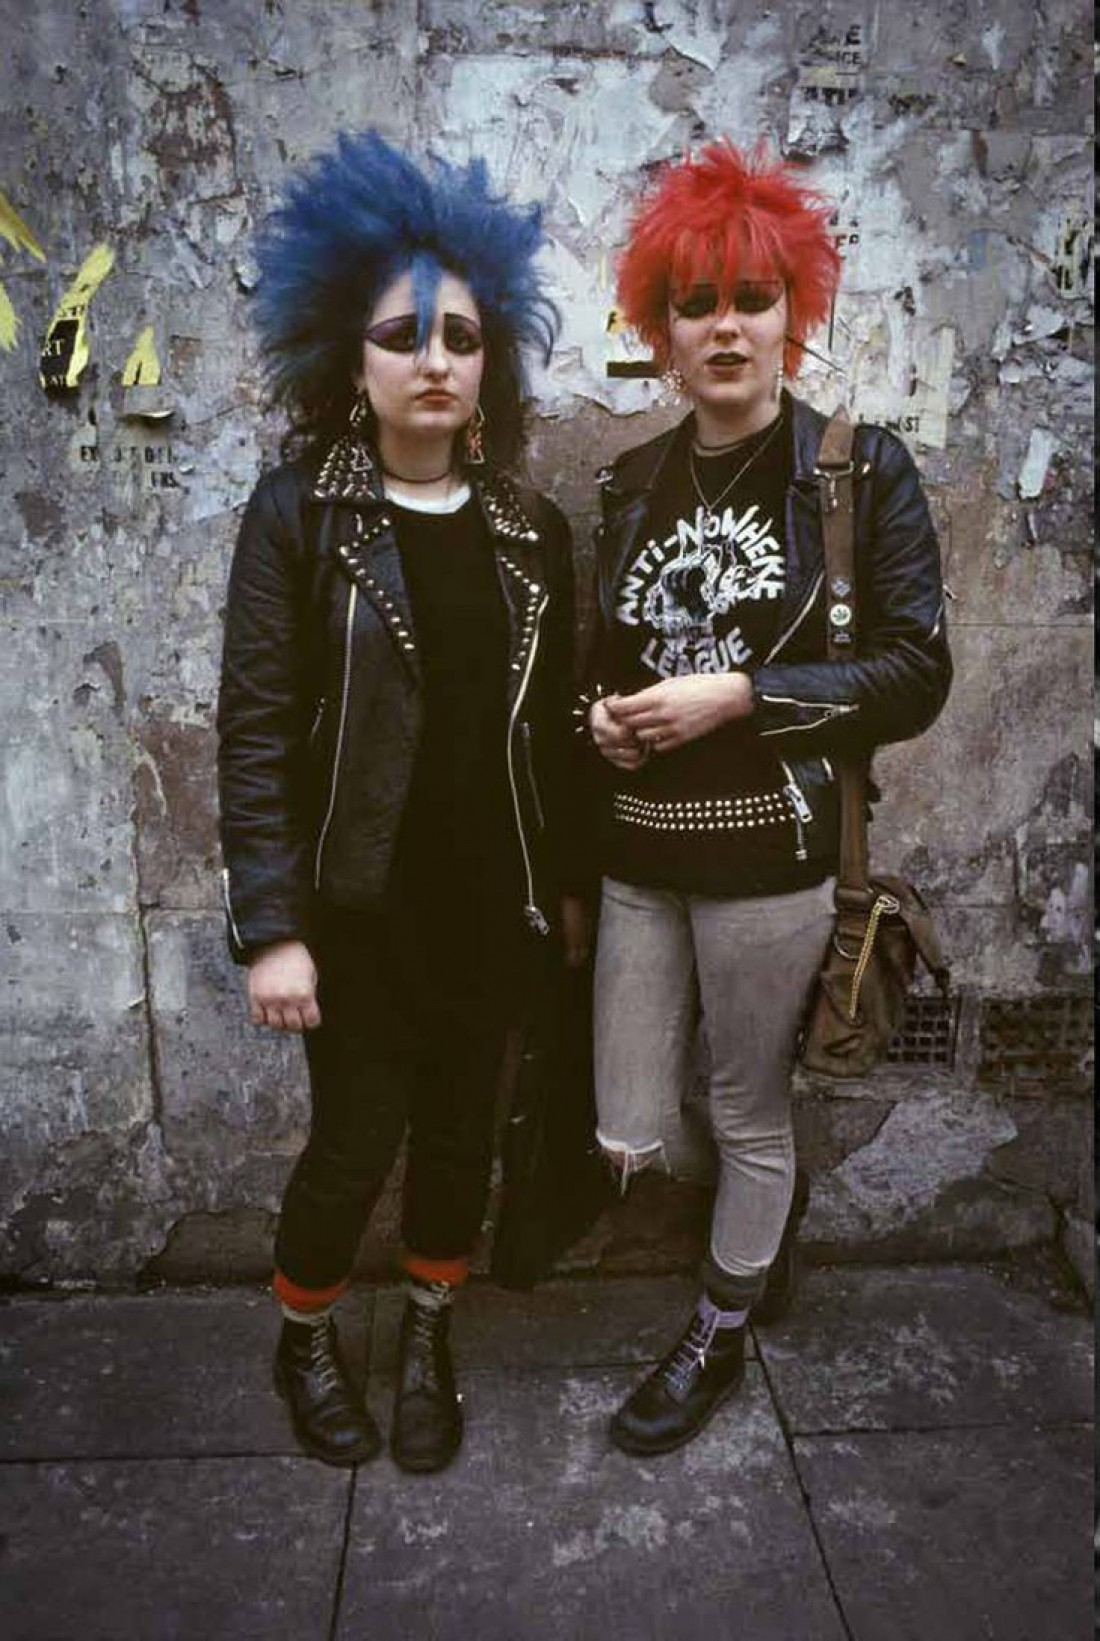 Punk fashion in the 70s